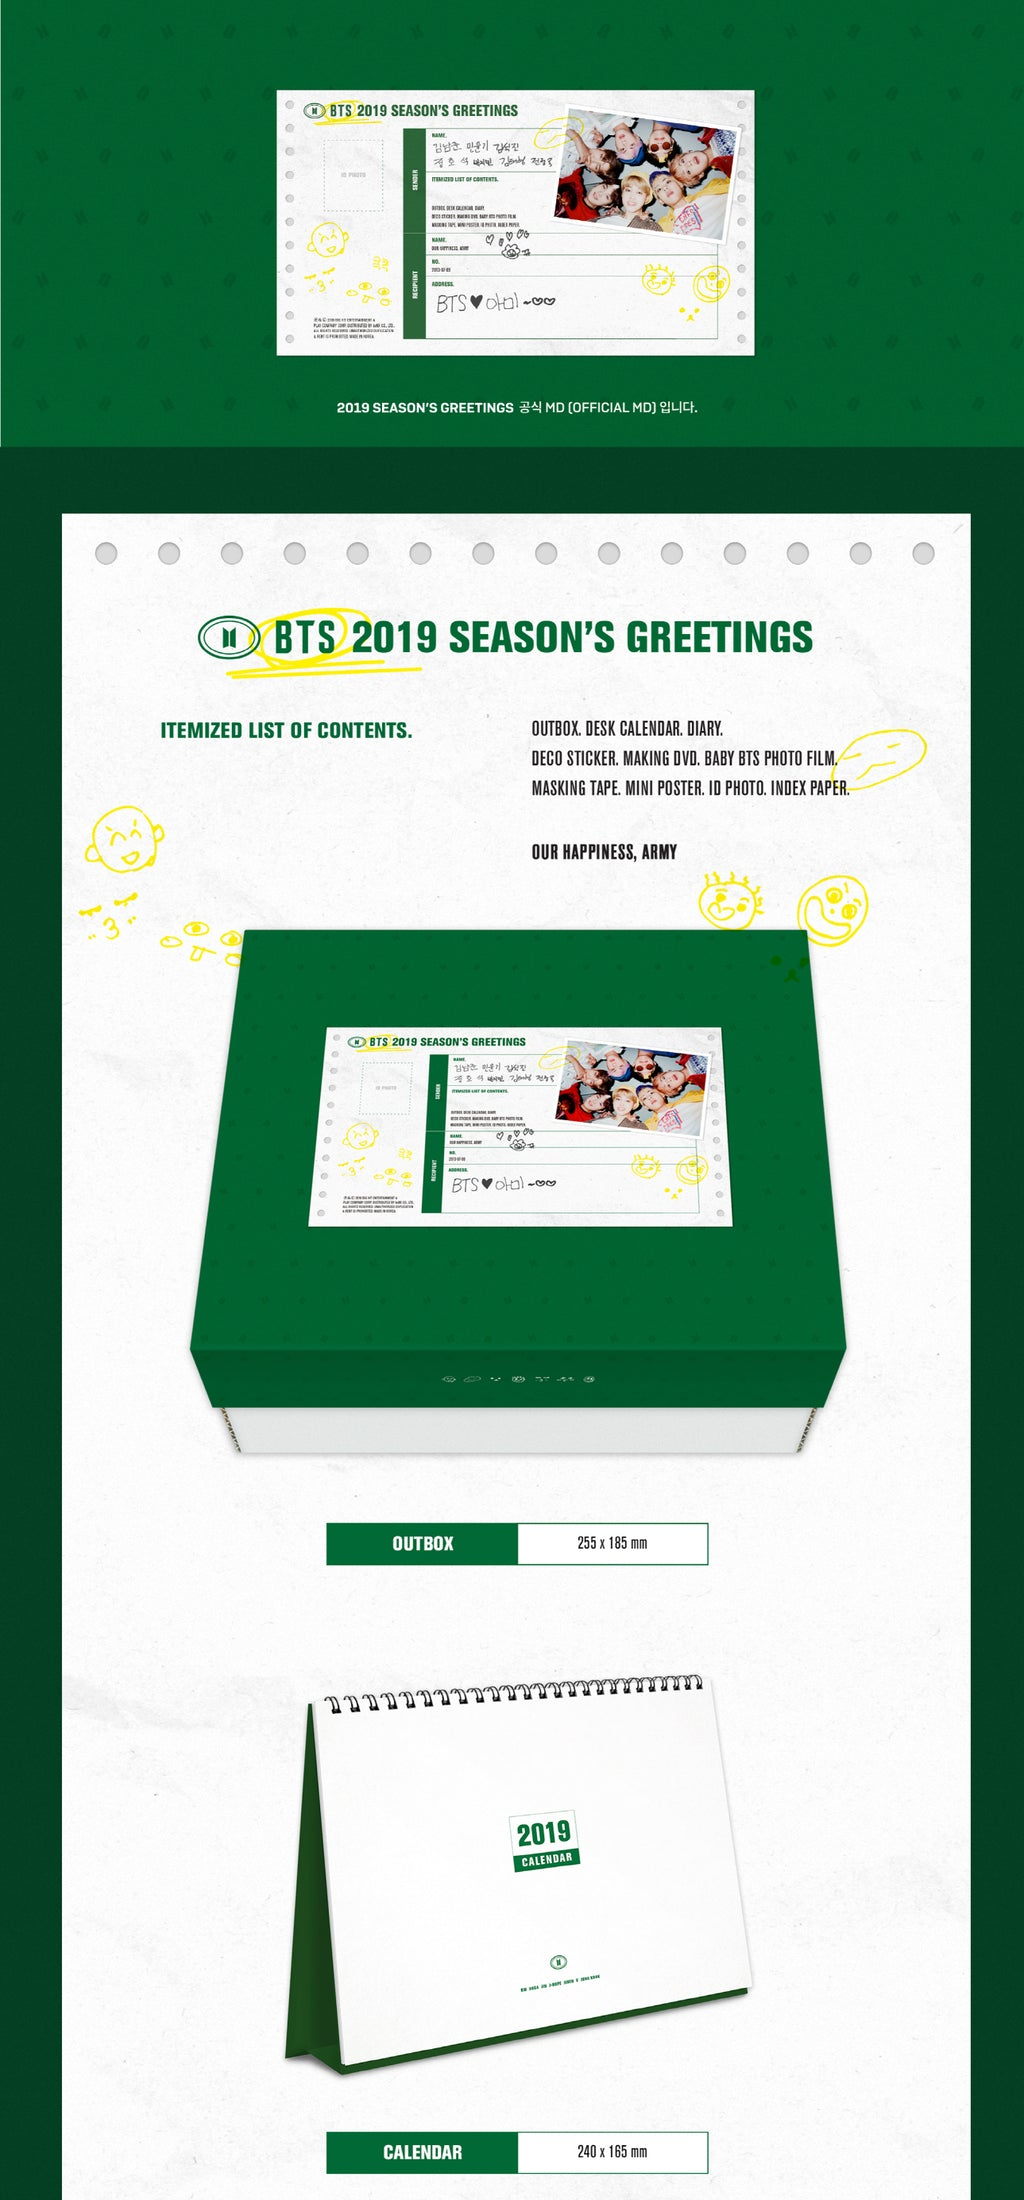 BTS 2019 Season's Greetings - Pre-Order